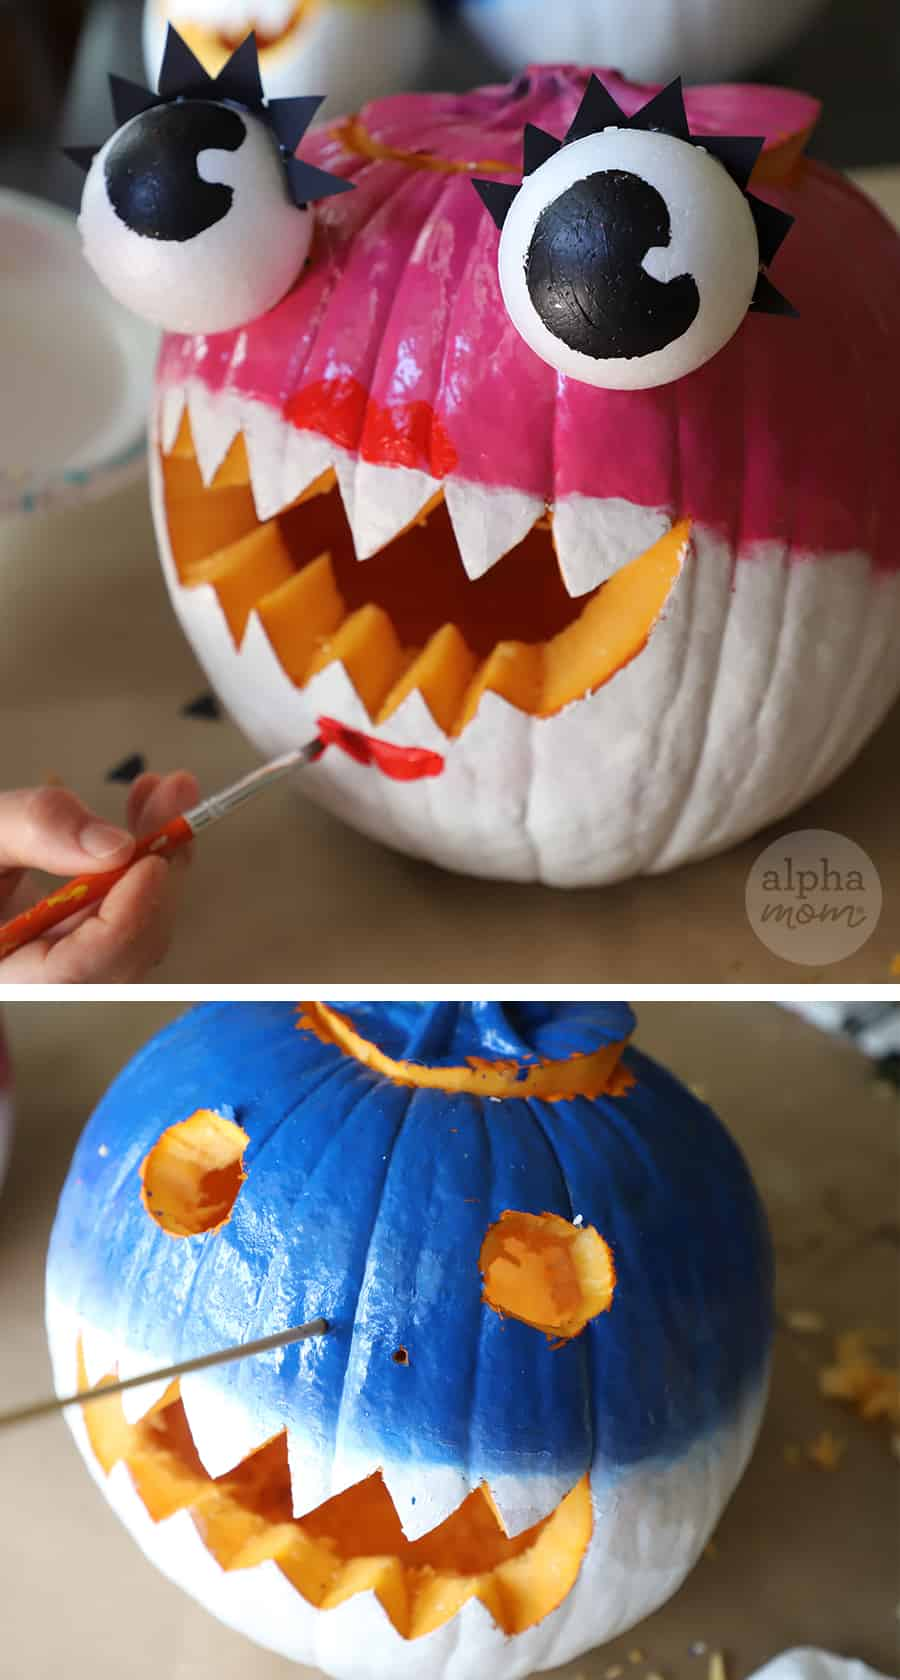 add details to pink and blue pumpkins to transform craft into Mommy and Daddy Shark jack o' lanterns